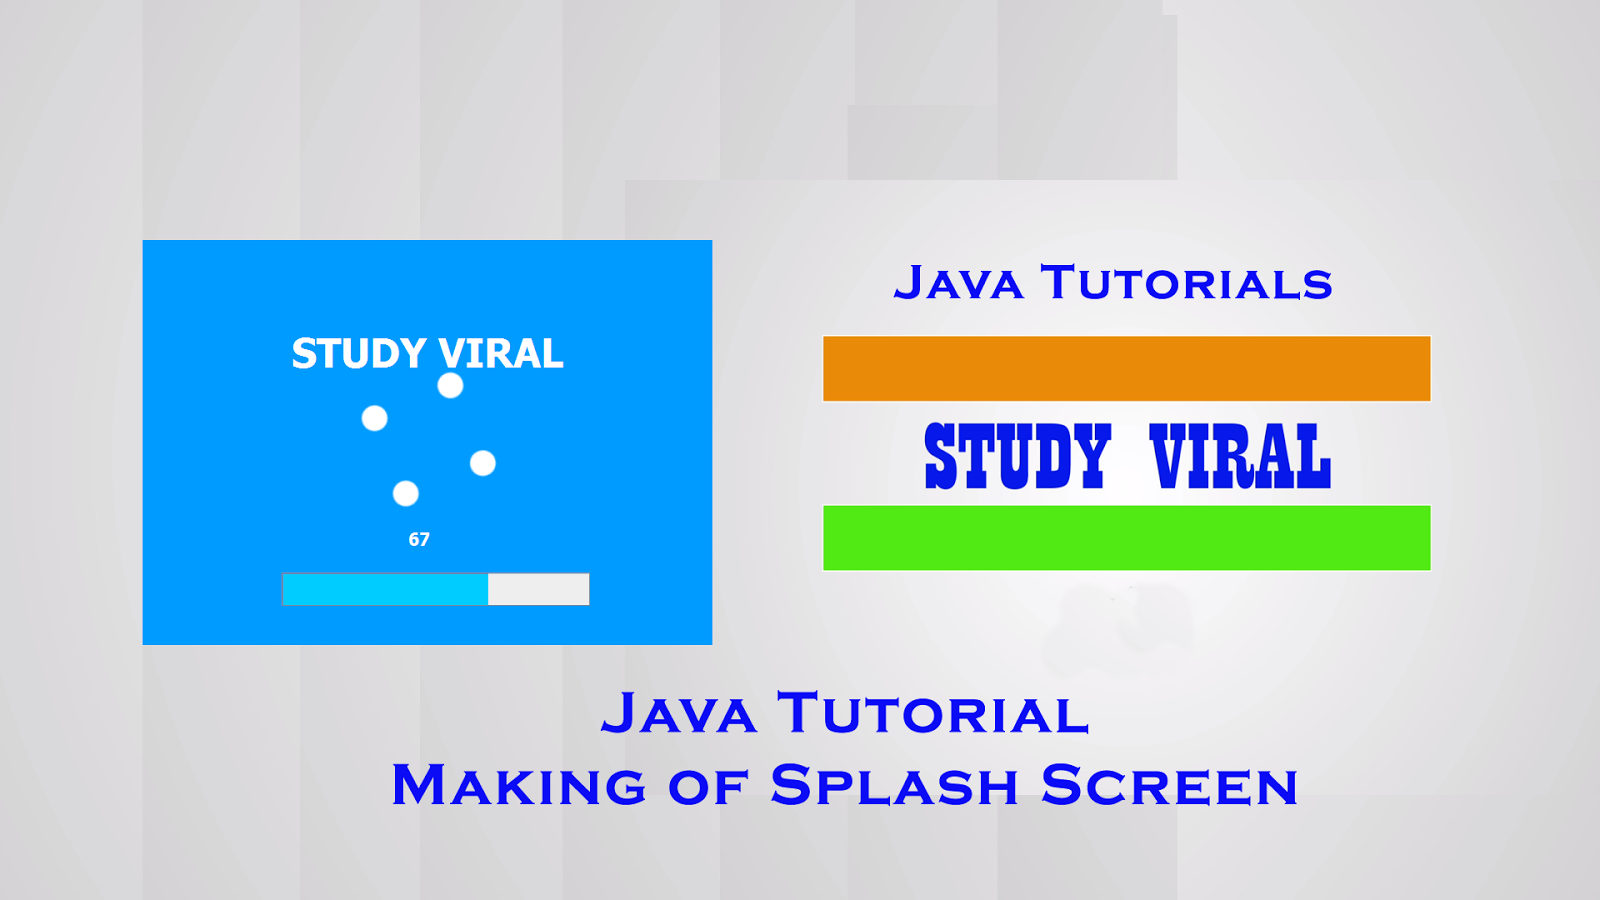 Swings in java tutorial images any tutorial examples java swing tutorial create animated splash screen study viral java swing tutorial create animated splash screen baditri Images